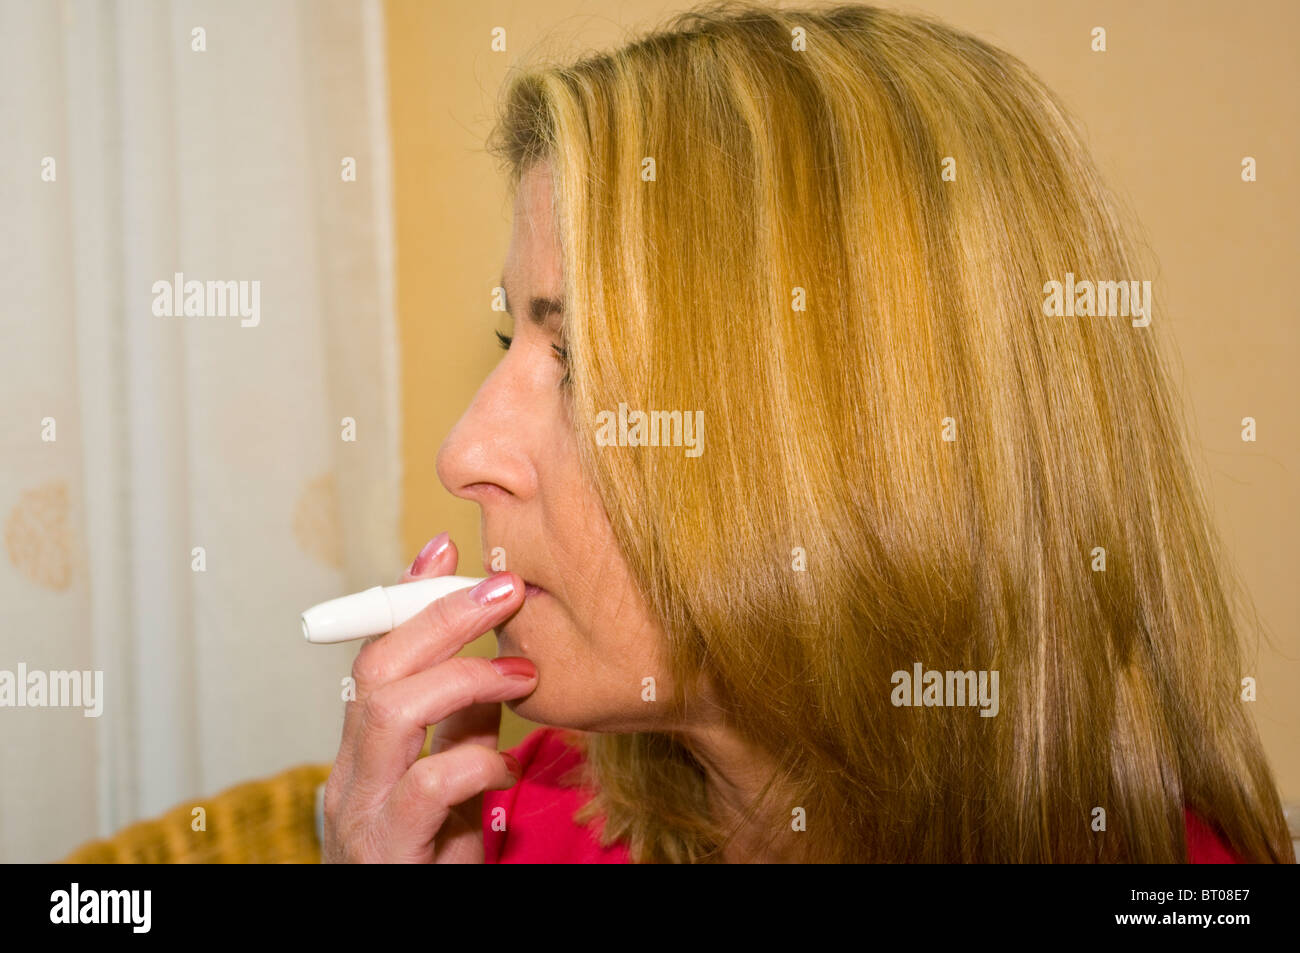 Middle Aged Woman Using A Nicotine Inhalator - Stock Image